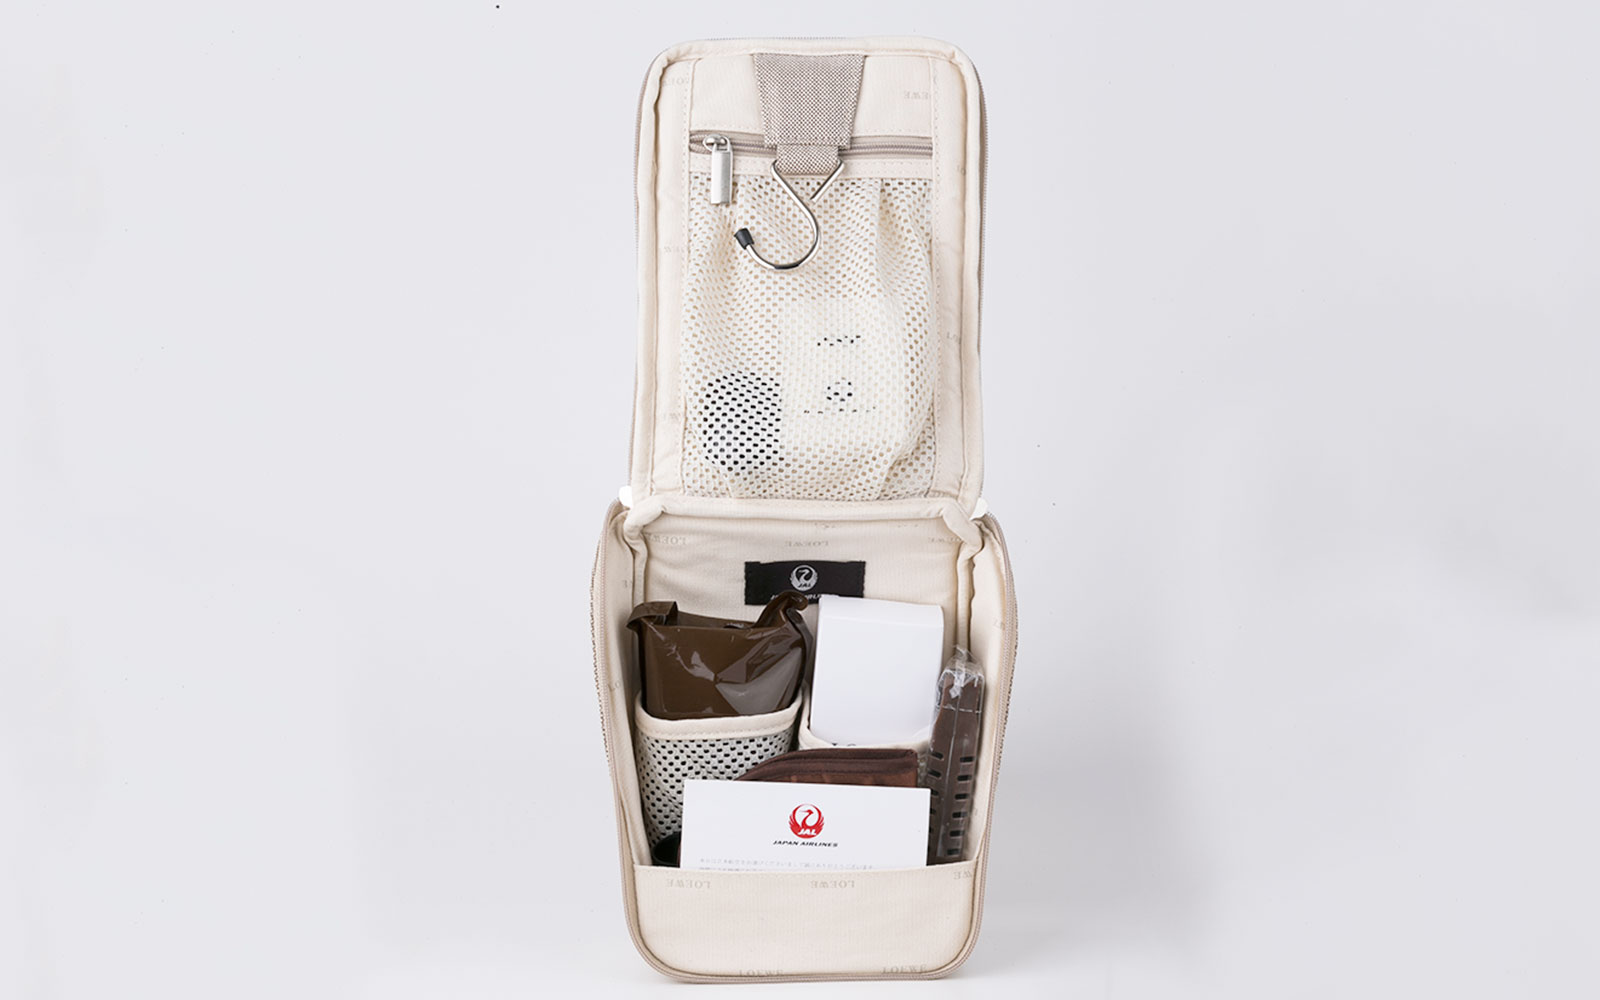 Coolest Airline Amenity Kits: Japan Airlines - First Class Kit